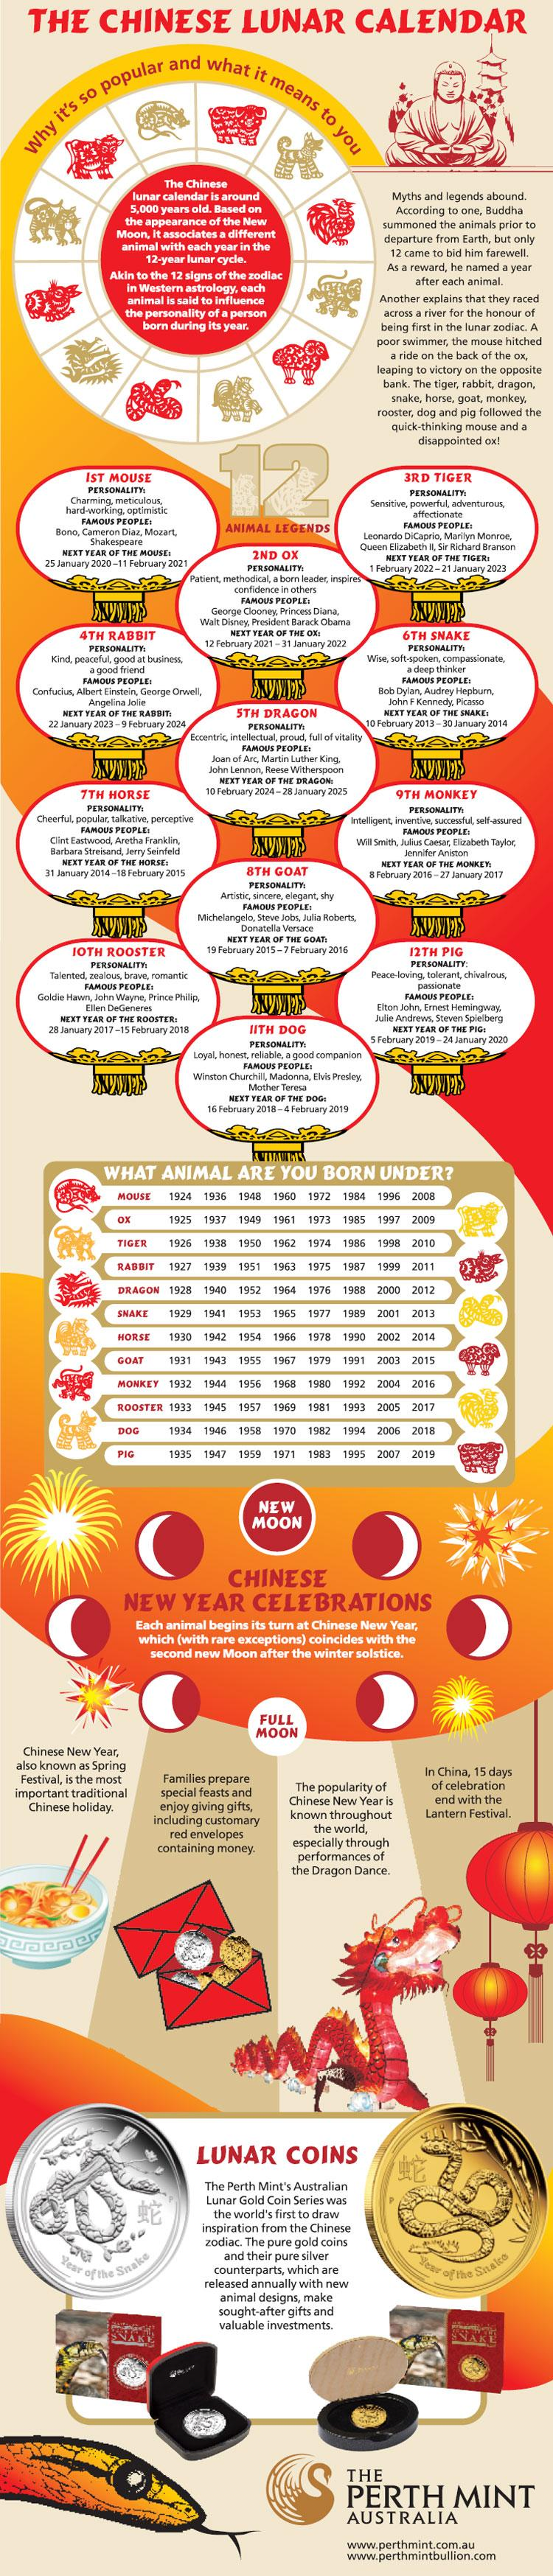 The Chinese Lunar Calendar